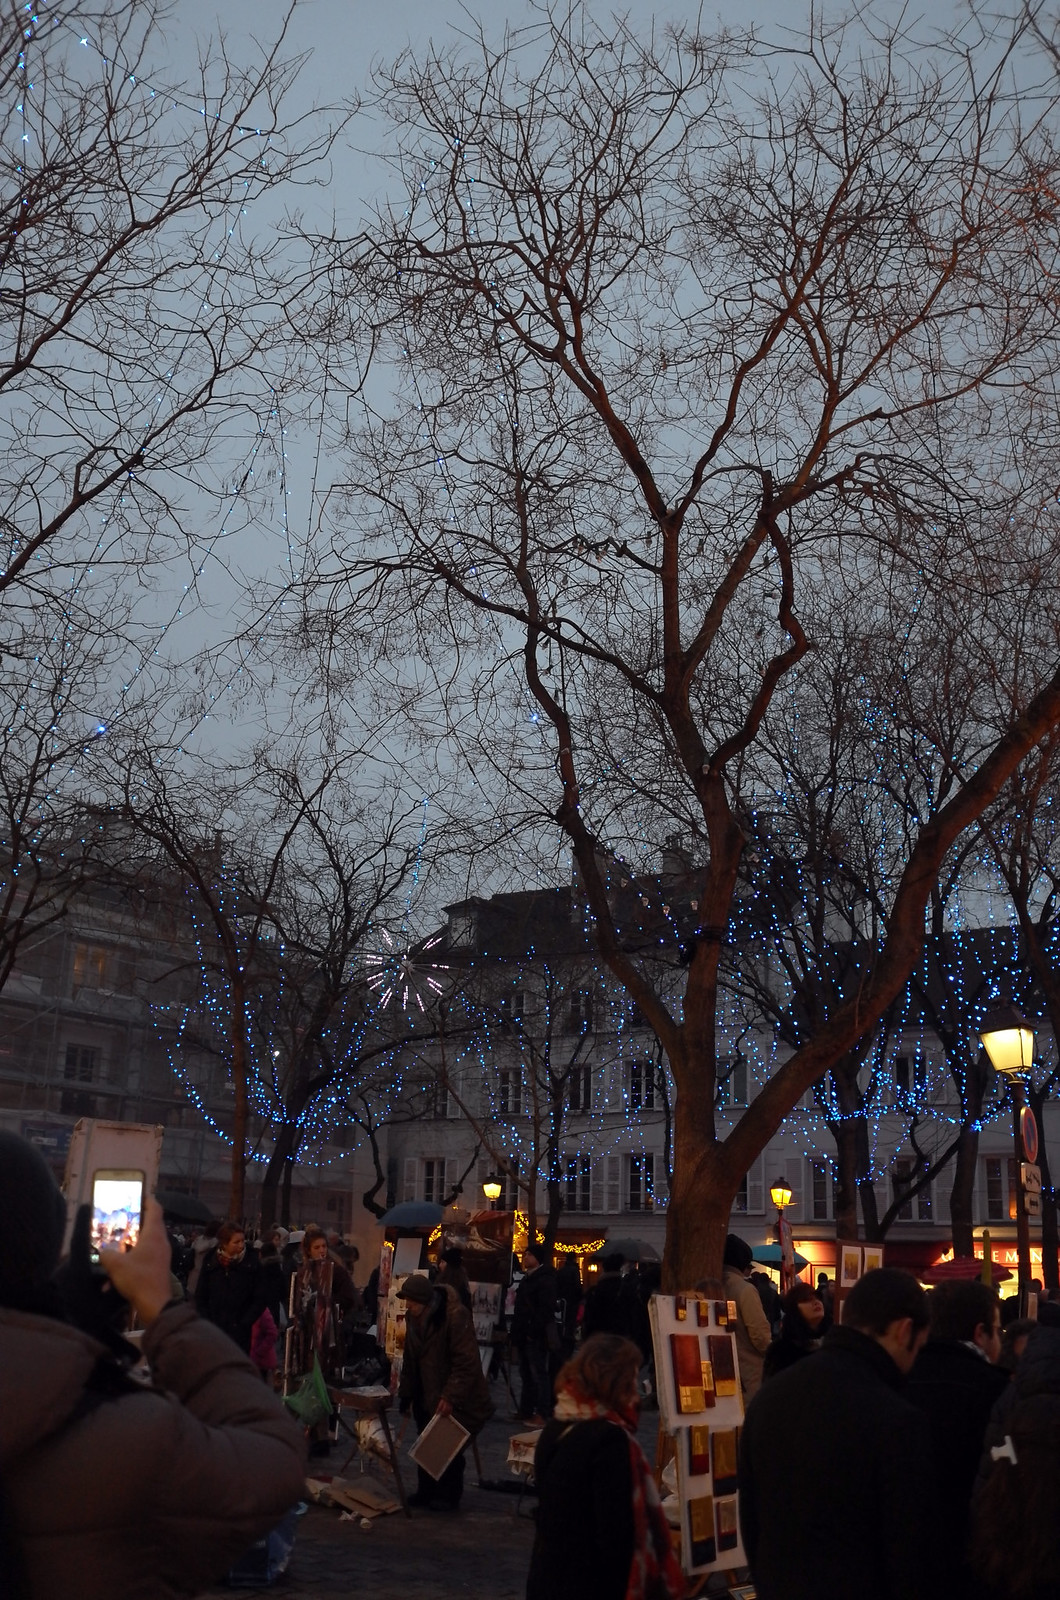 Paris in Season Greetings